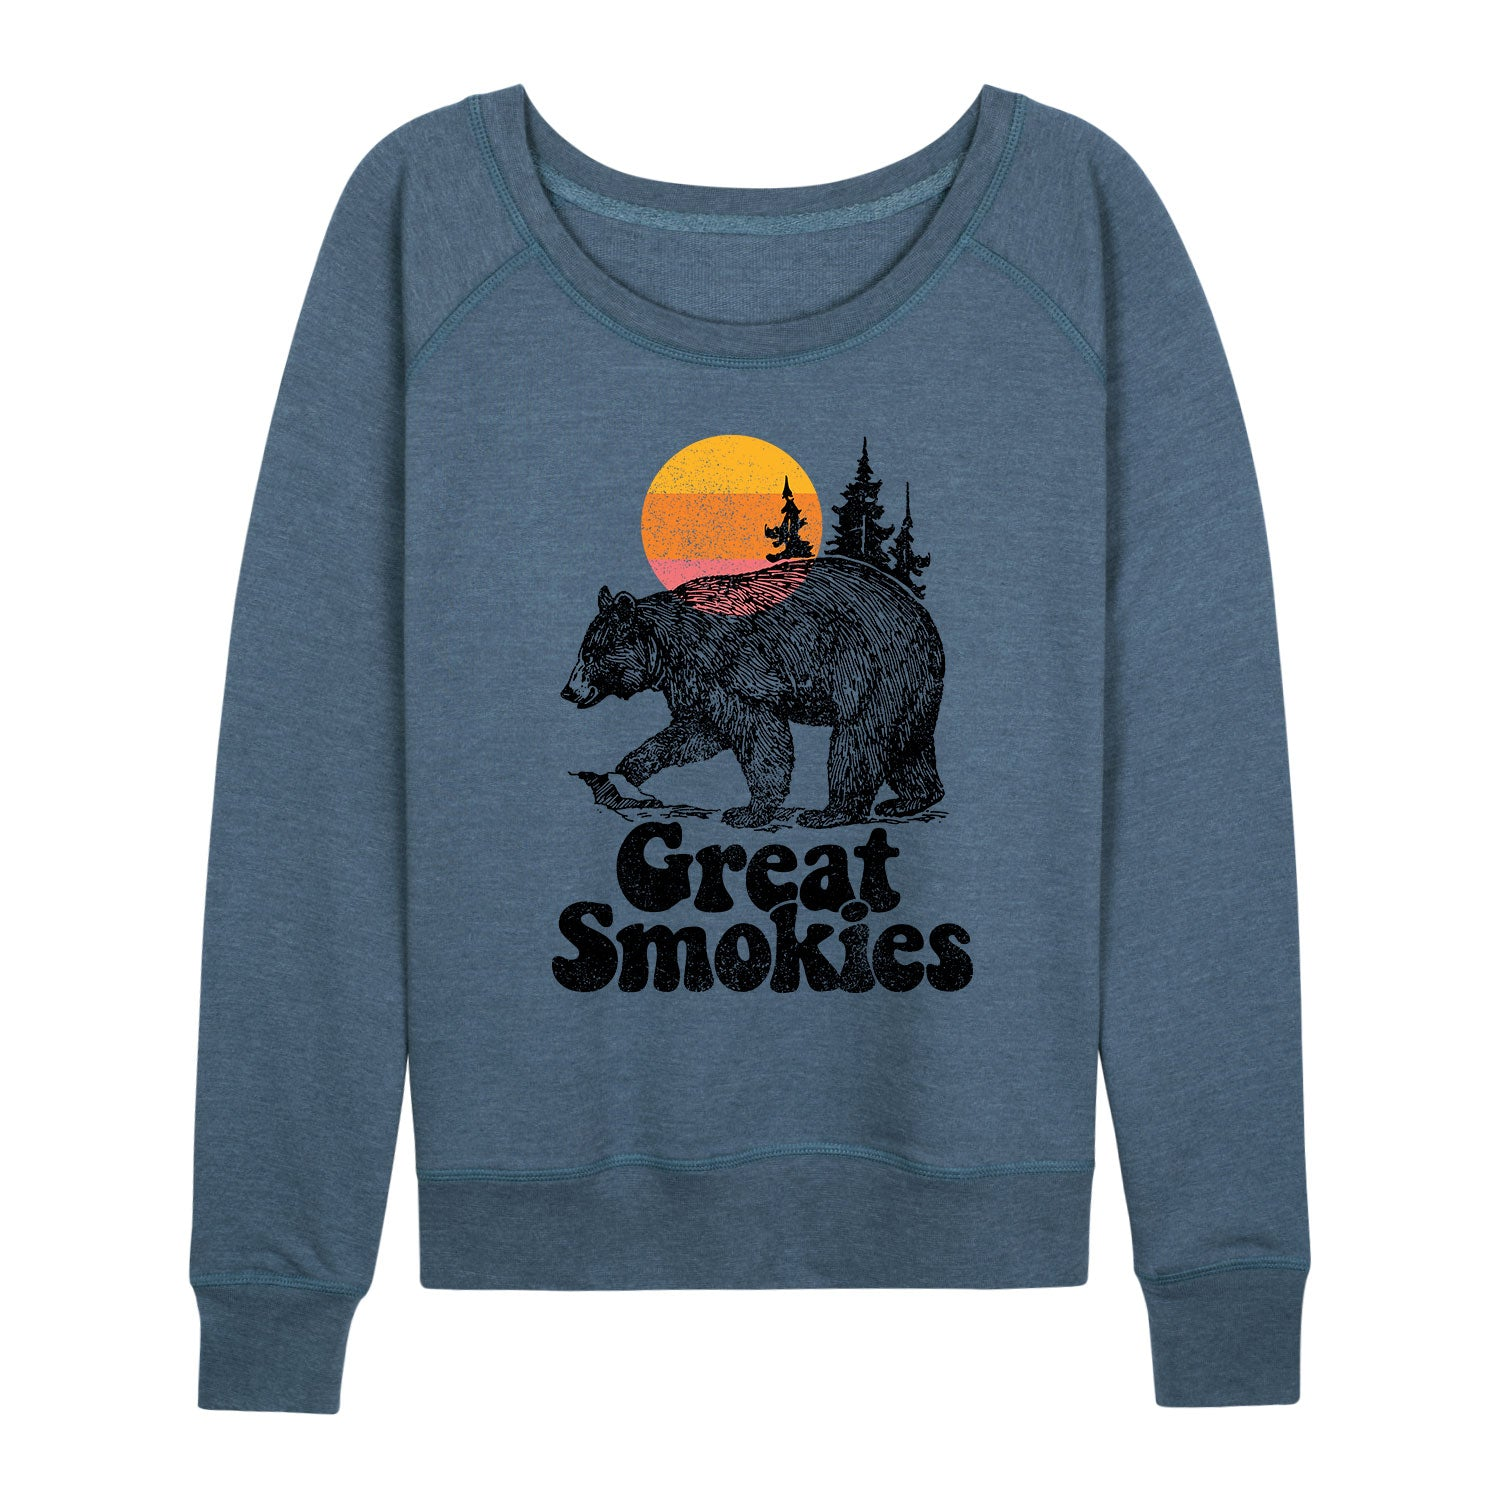 Great Smokies-Women's Slouchy